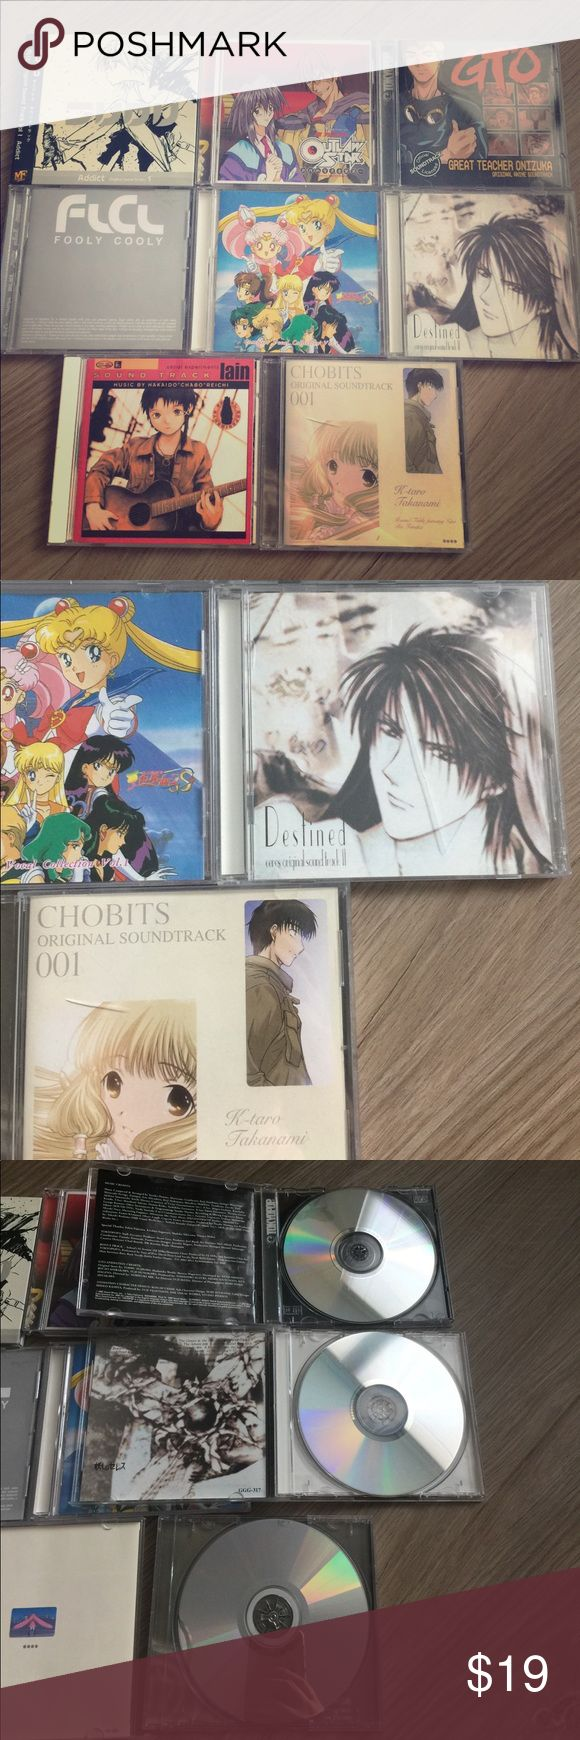 Anime OST CDs Sailor Moon Outlaw Star FLCL Chobits Anime Soundtracks!!! I have some of THE BEST old school anime CDs for sale as a set. I may sell separates IF I can find a buyer for each. Sailor Moon, FLCL, Outlaw Star, Chobits, Ayashi no Ceres (Ceres Celestial Legend), Serial Experiments Lain, and GTO. Please note that all discs have been well loved/listened to, but are in good playable condition. The cases may be cracked, broken, and falling off hinges. All CDs come with their original…